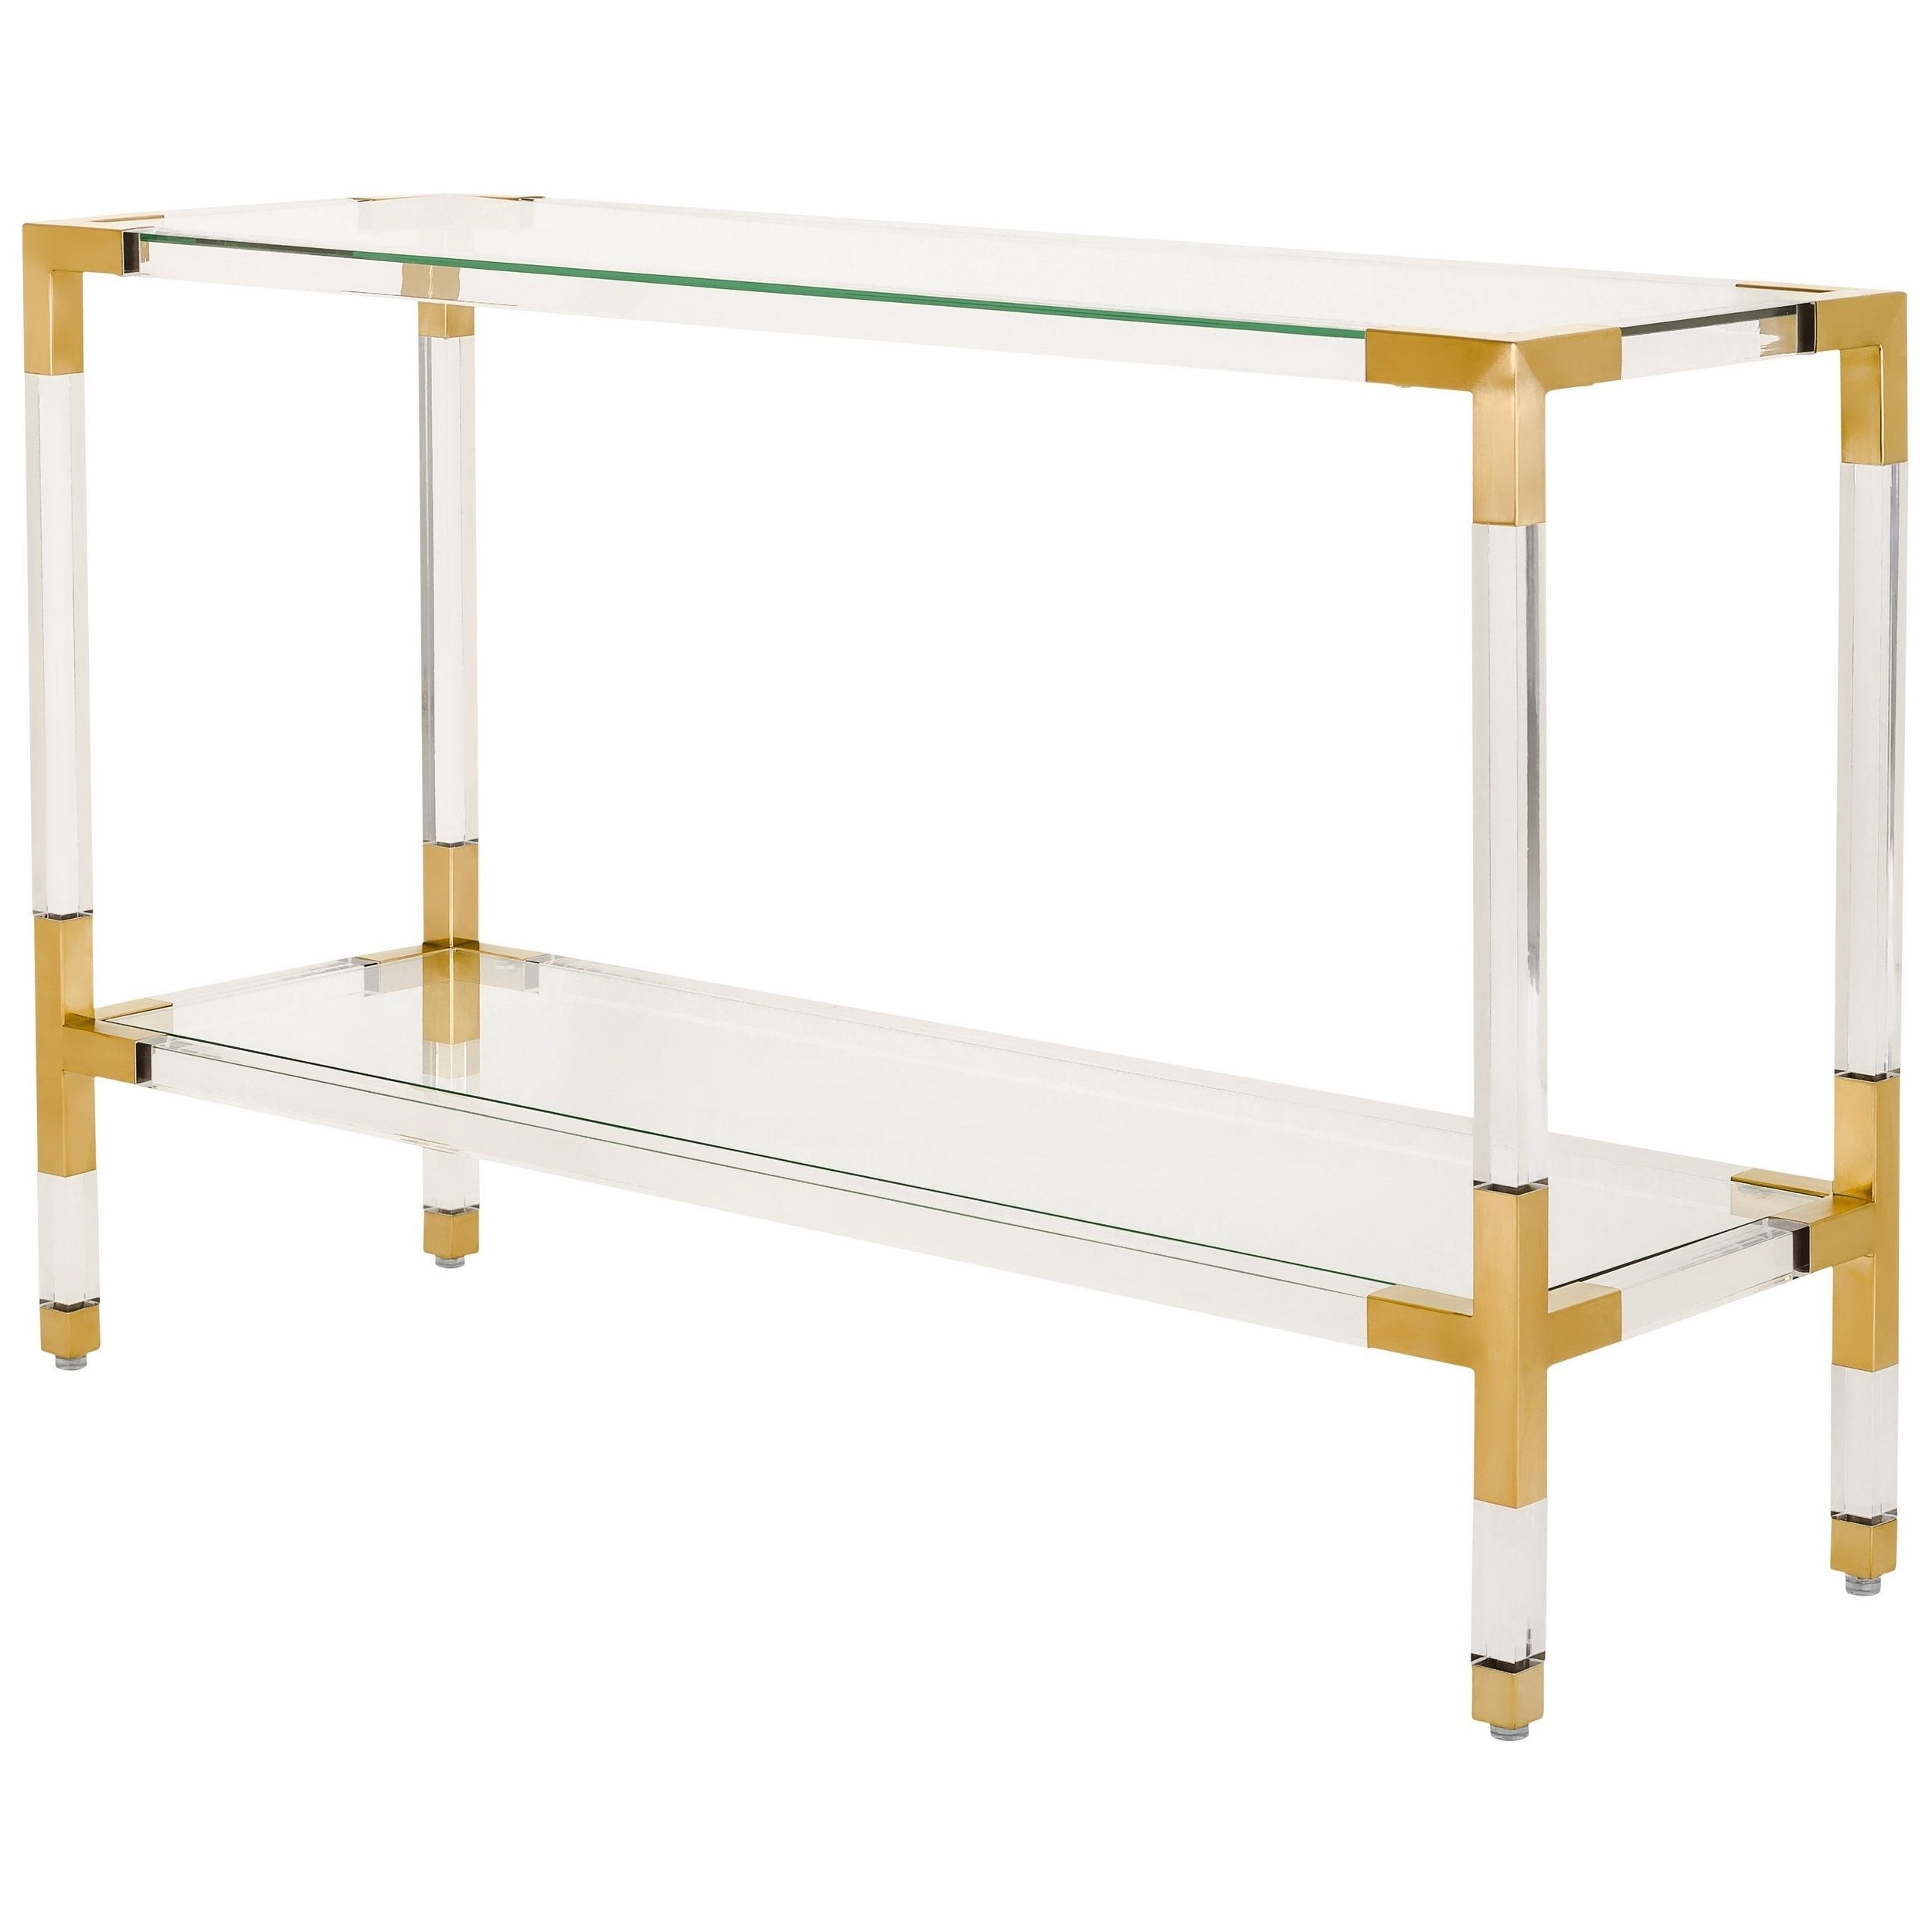 Safavieh Couture Arverne Acrylic Console , Clear | Pinterest In Parsons Clear Glass Top & Stainless Steel Base 48X16 Console Tables (View 17 of 20)